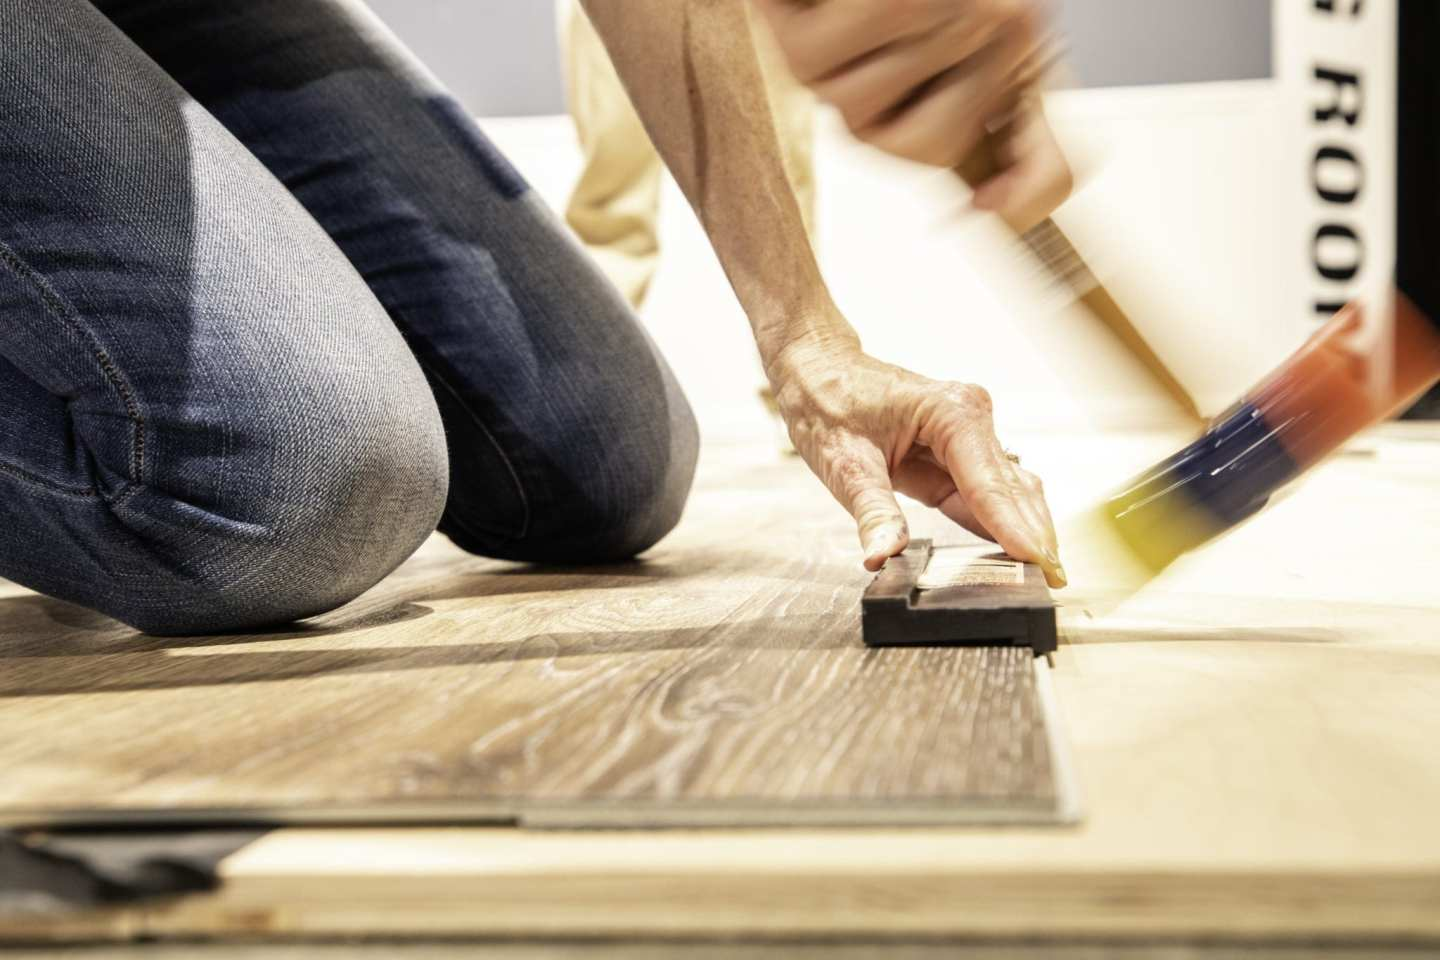 Diy hardwood floor - how to install yourself and make your floors look great!